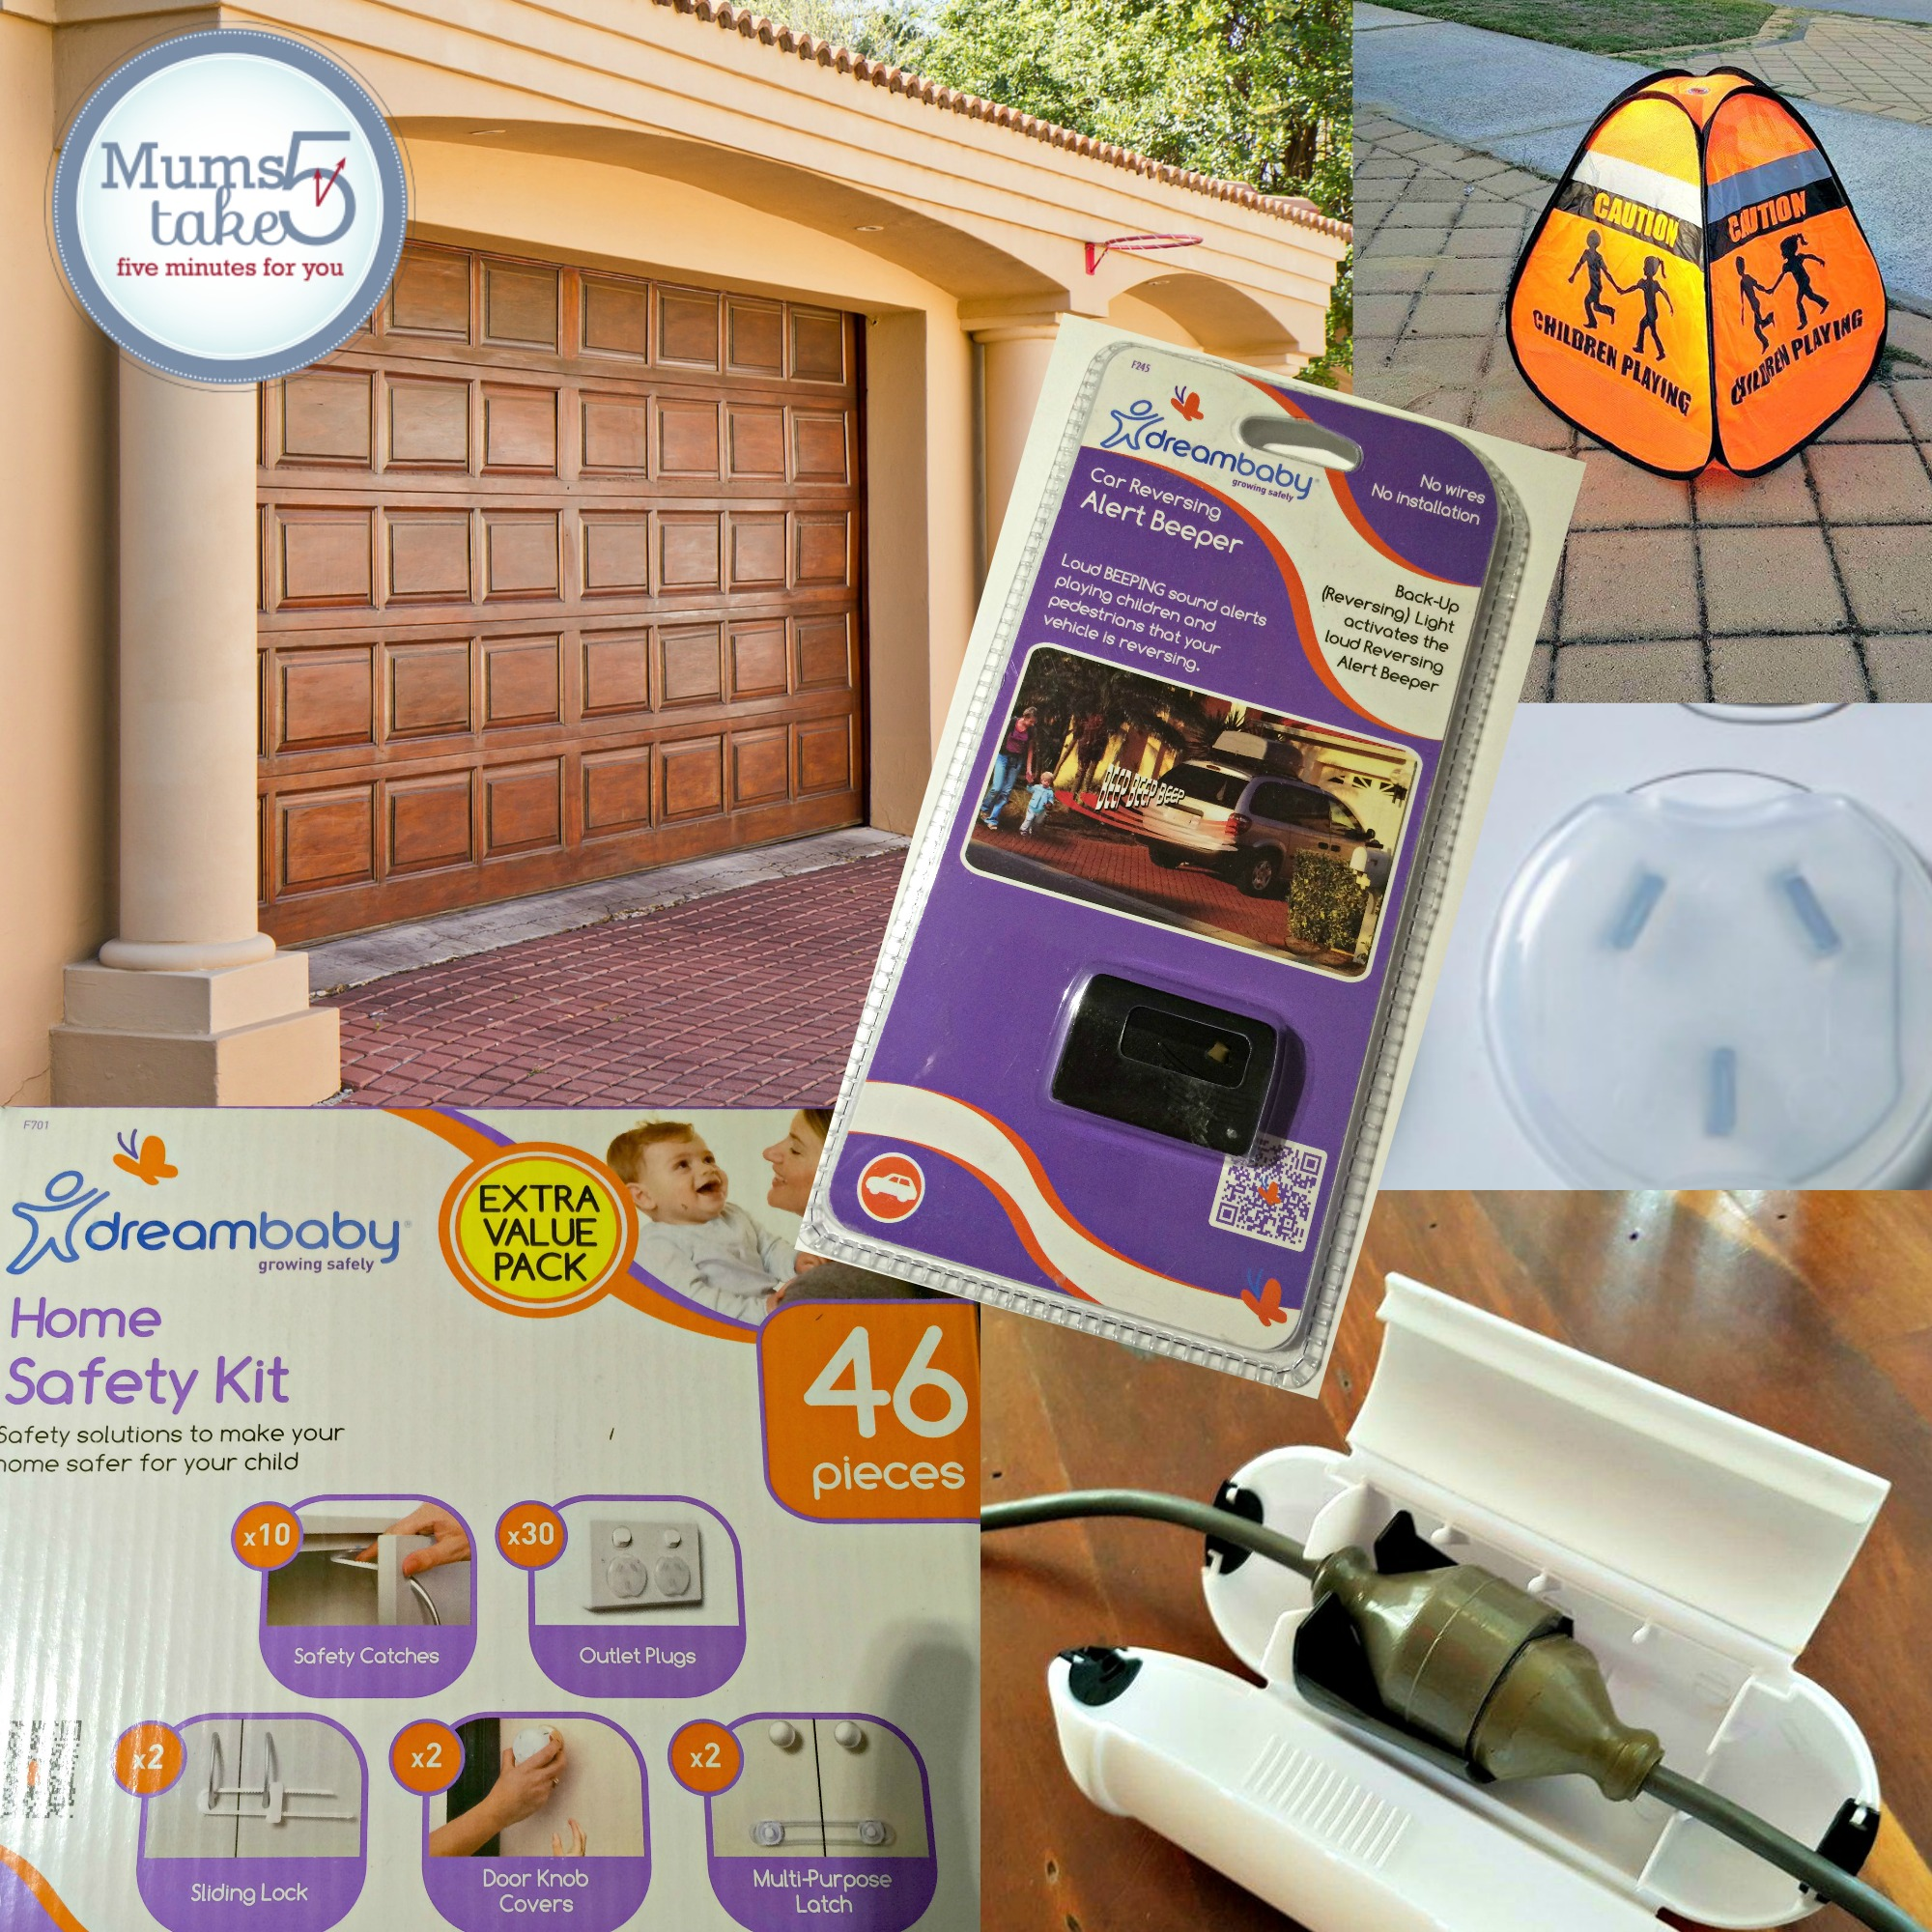 Dreambaby Garage Safety Giveaway